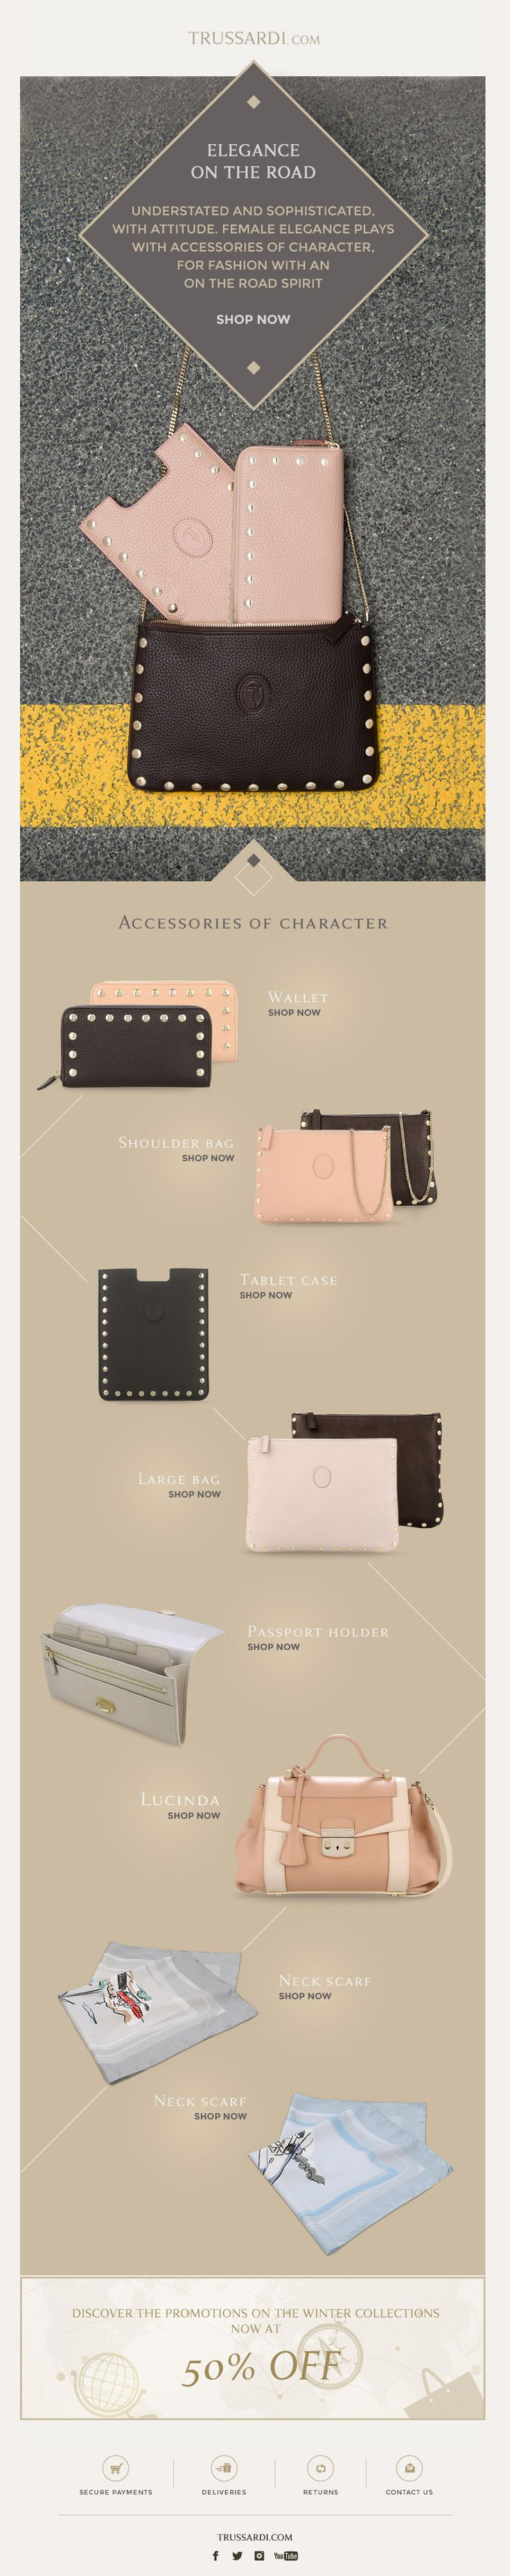 55 best images about Emails luxe on Pinterest